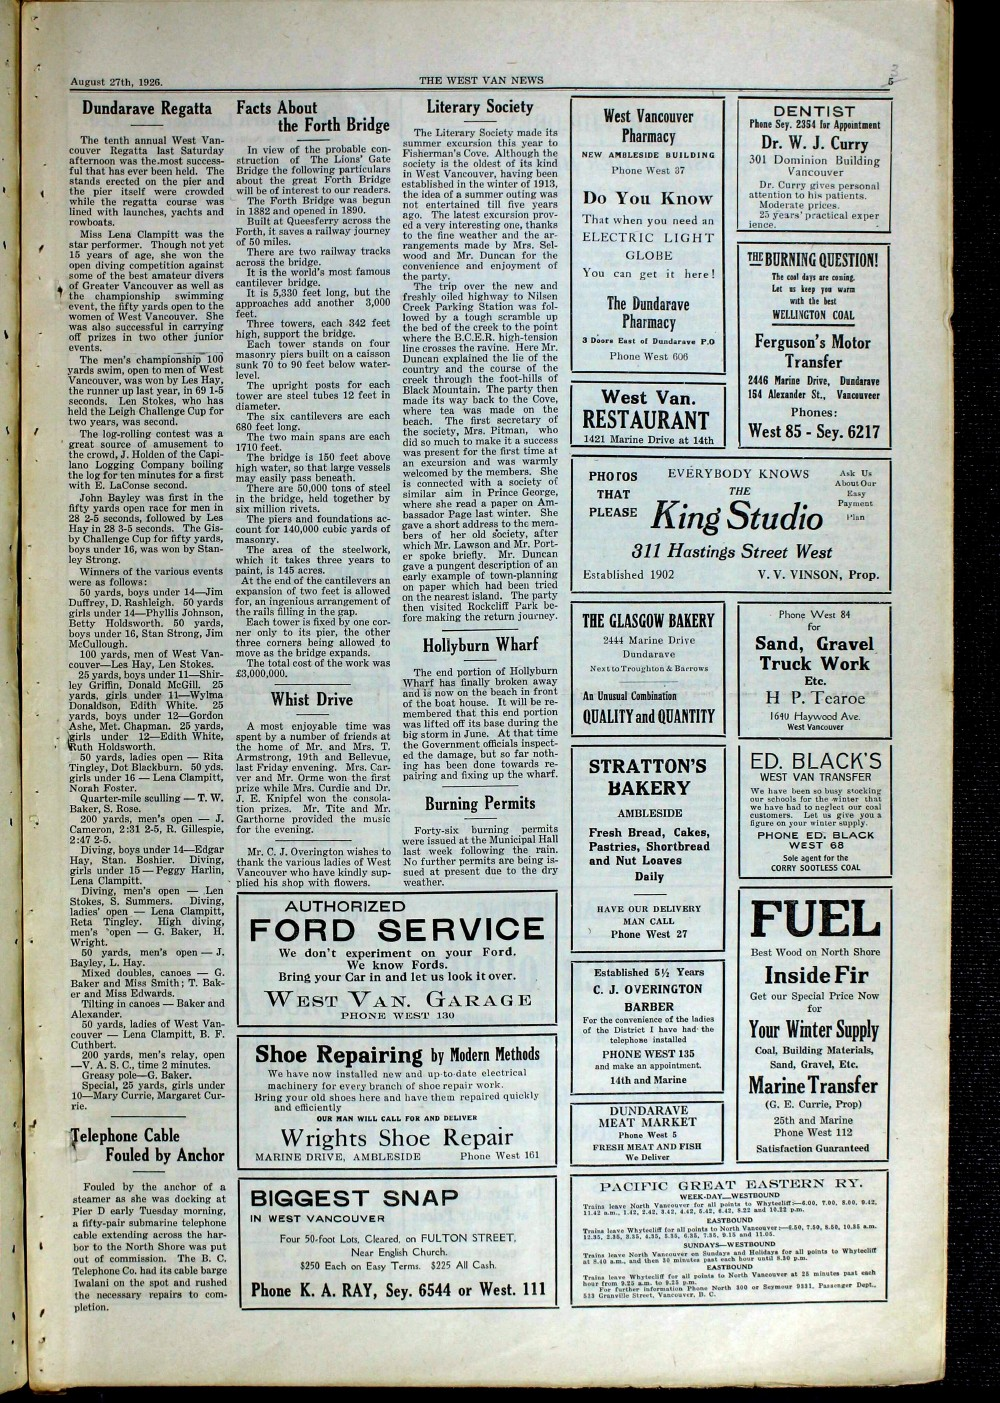 West Van. News (West Vancouver), 27 Aug 1926